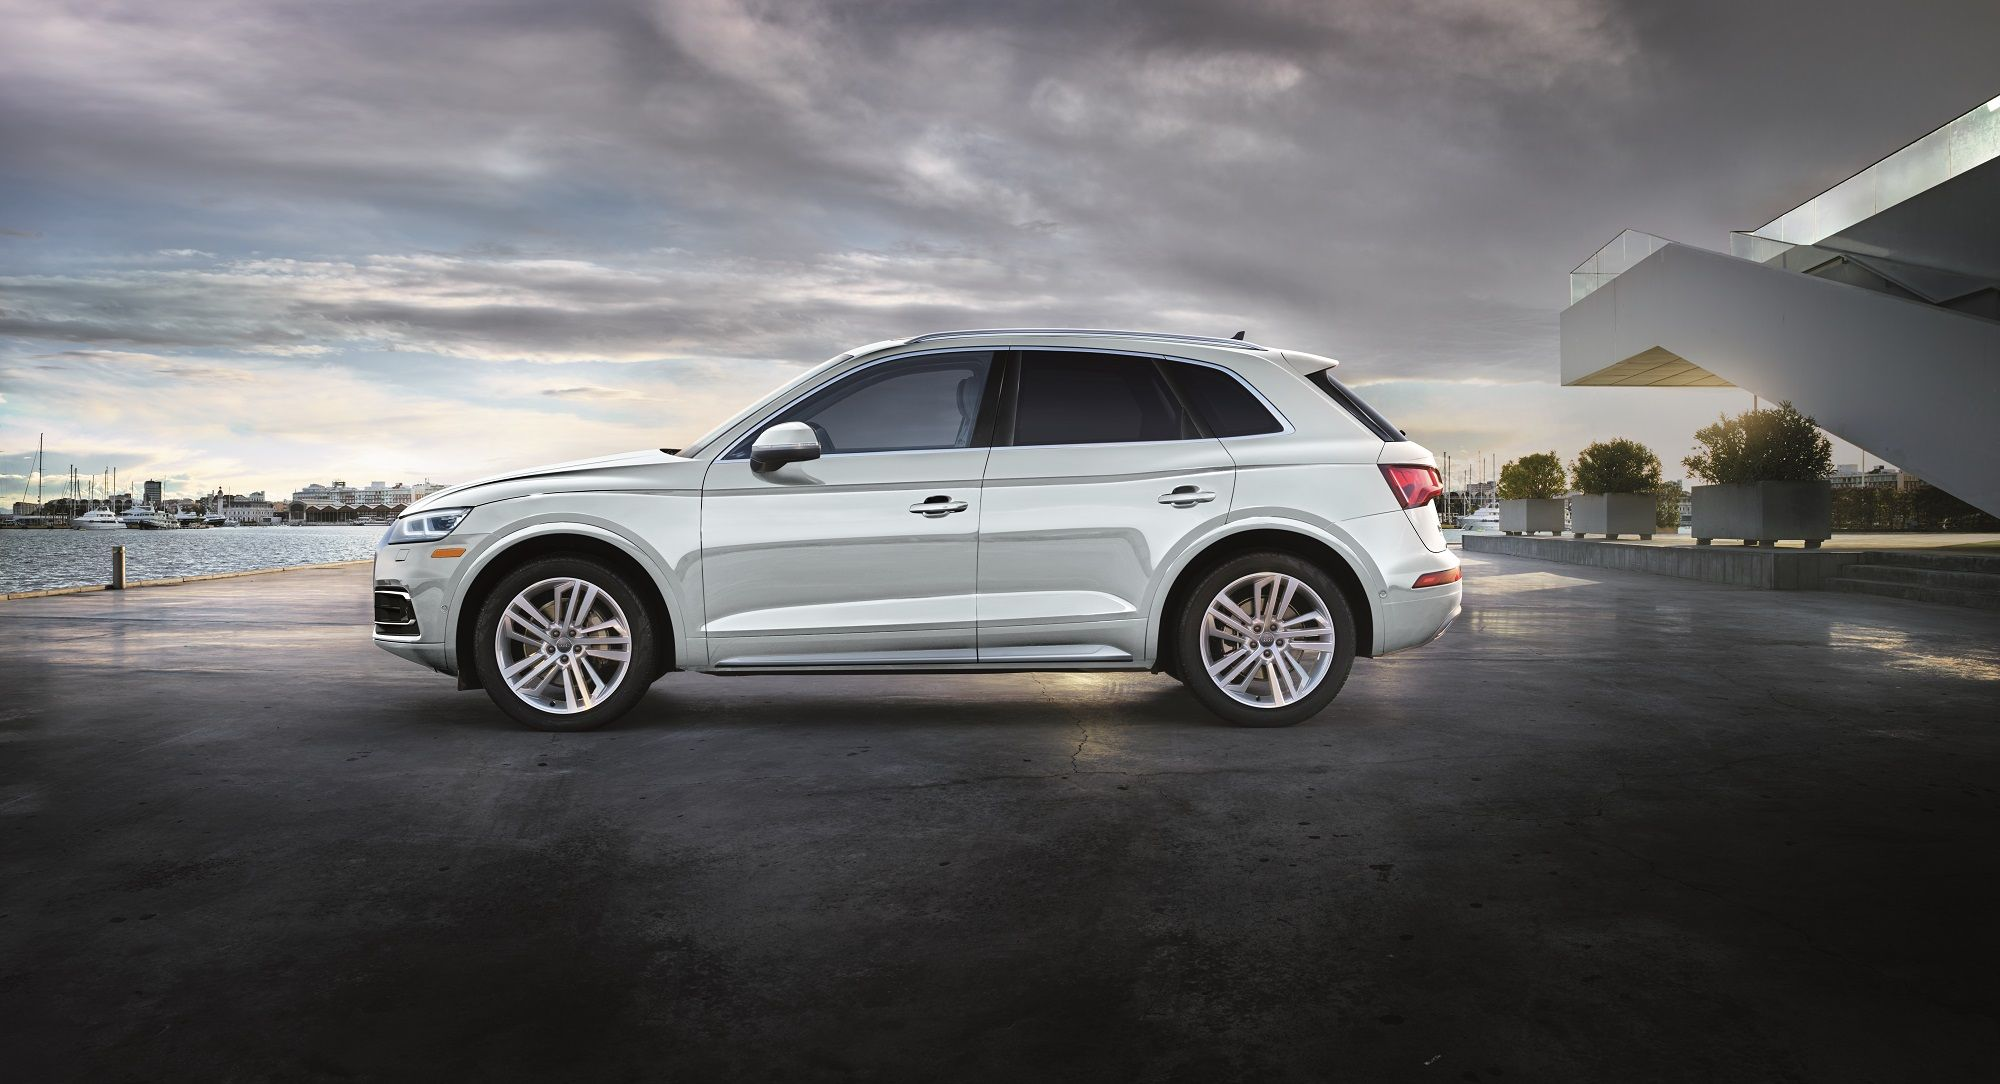 Lease the 2019 Q5 from $255 bi-weekly